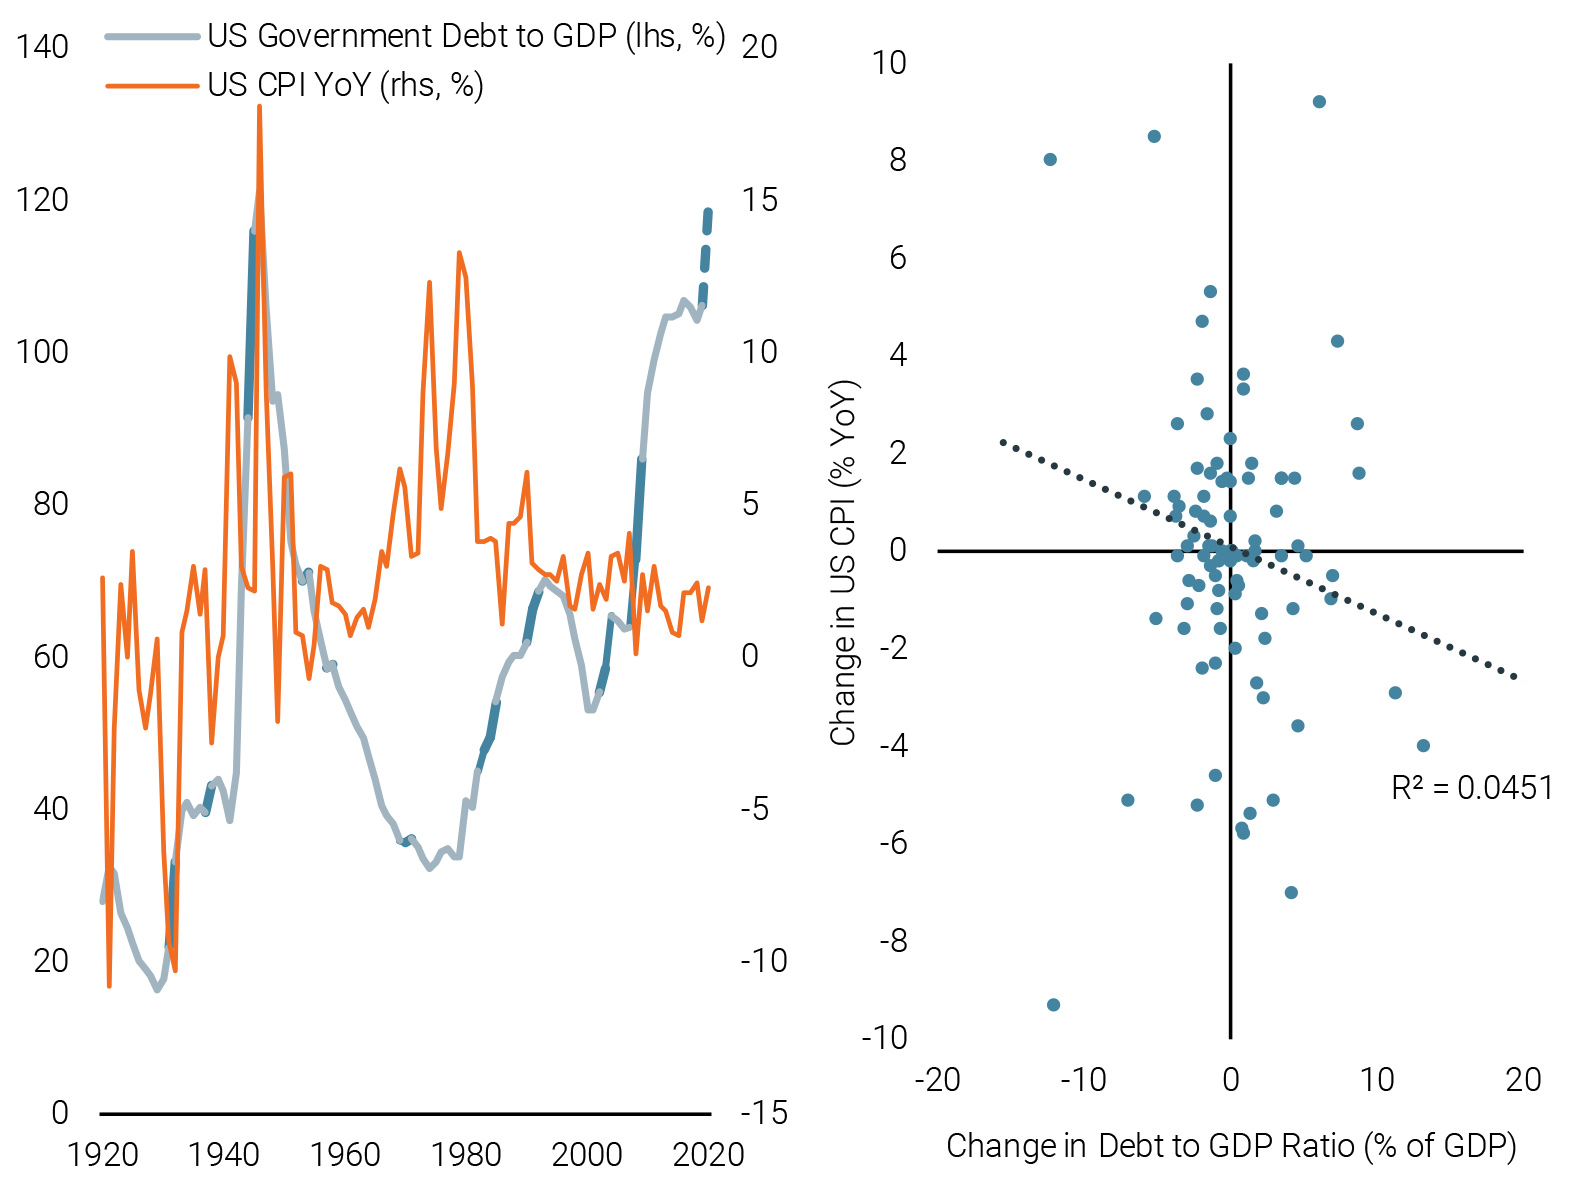 Figure 5: Debt to GDP Ratio in the US vs. Inflation (left) and Scatterplot (right)